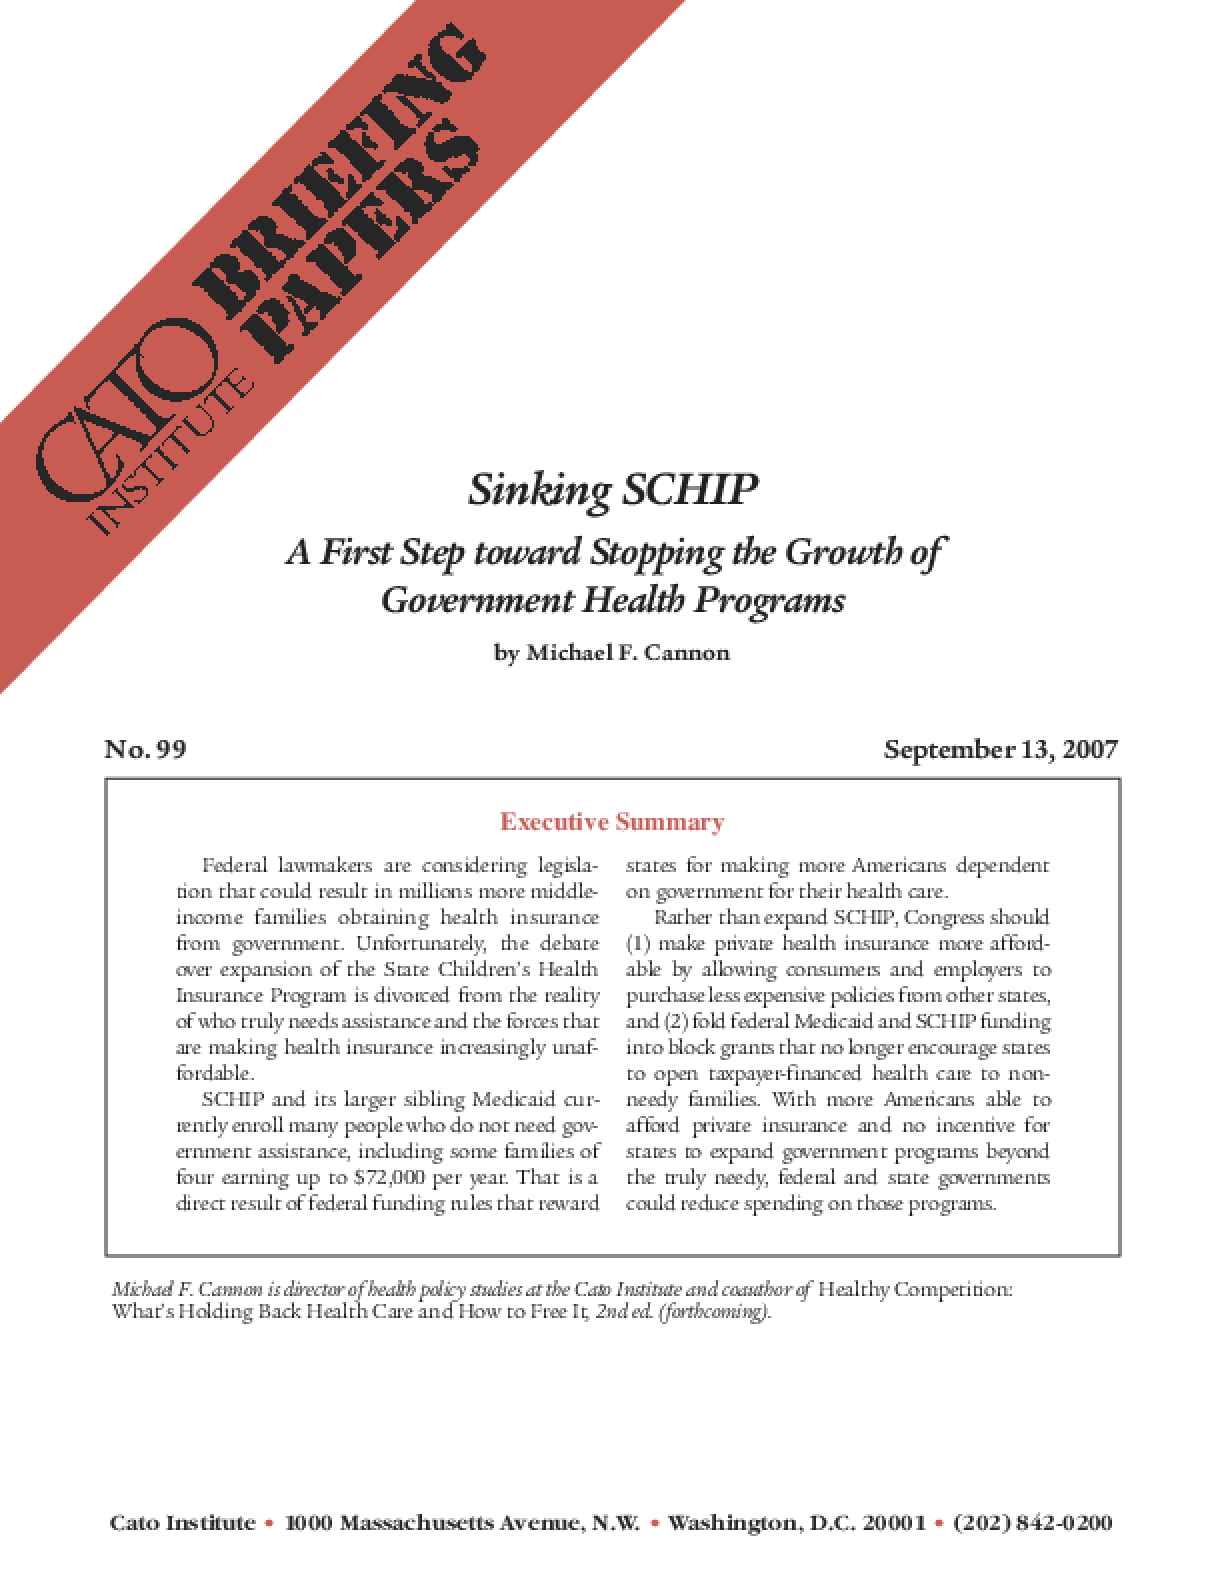 Sinking SCHIP: A First Step toward Stopping the Growth of Government Health Programs